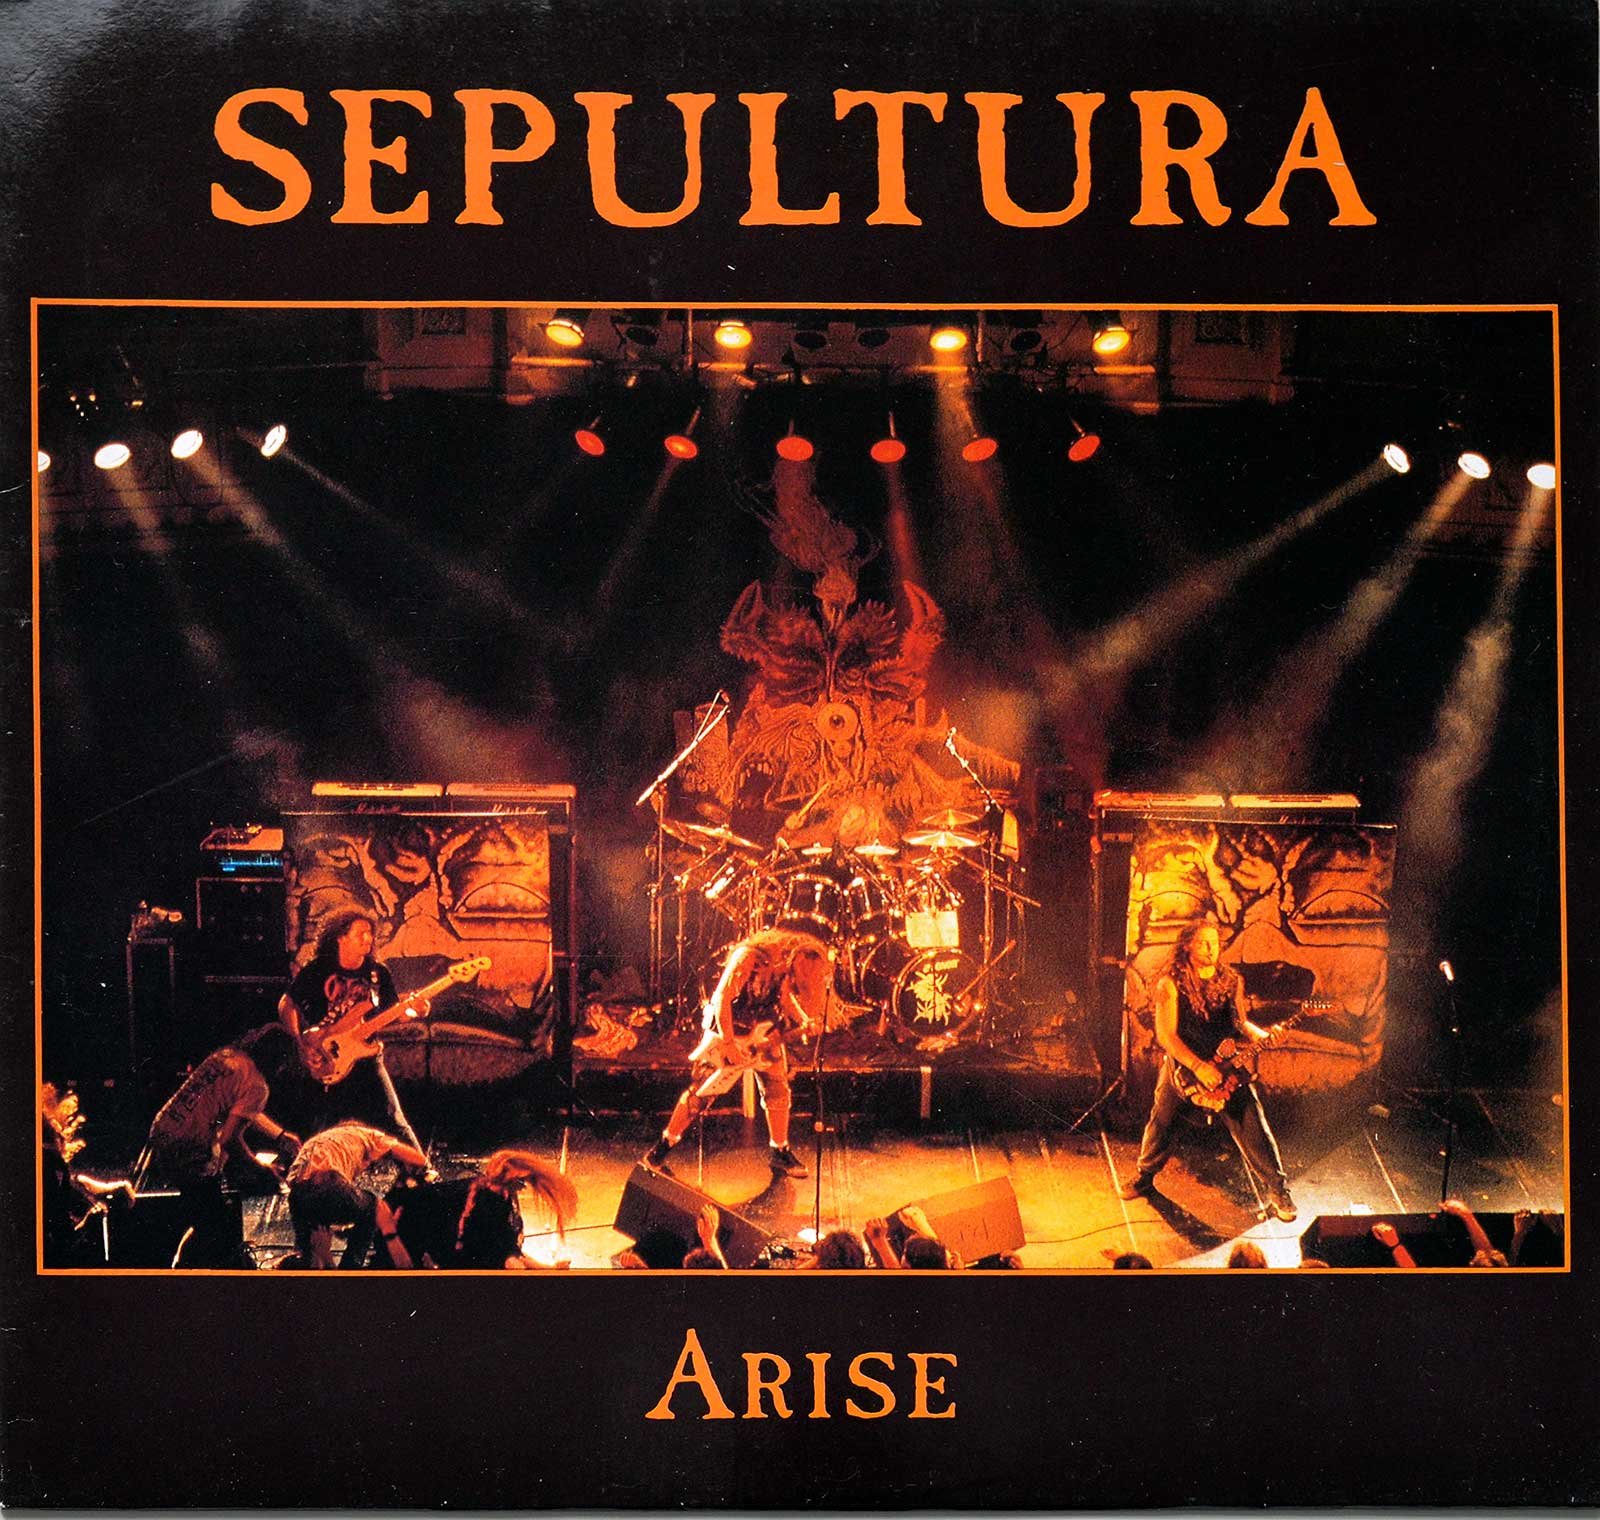 large photo of the album front cover of: Arise by Sepultura